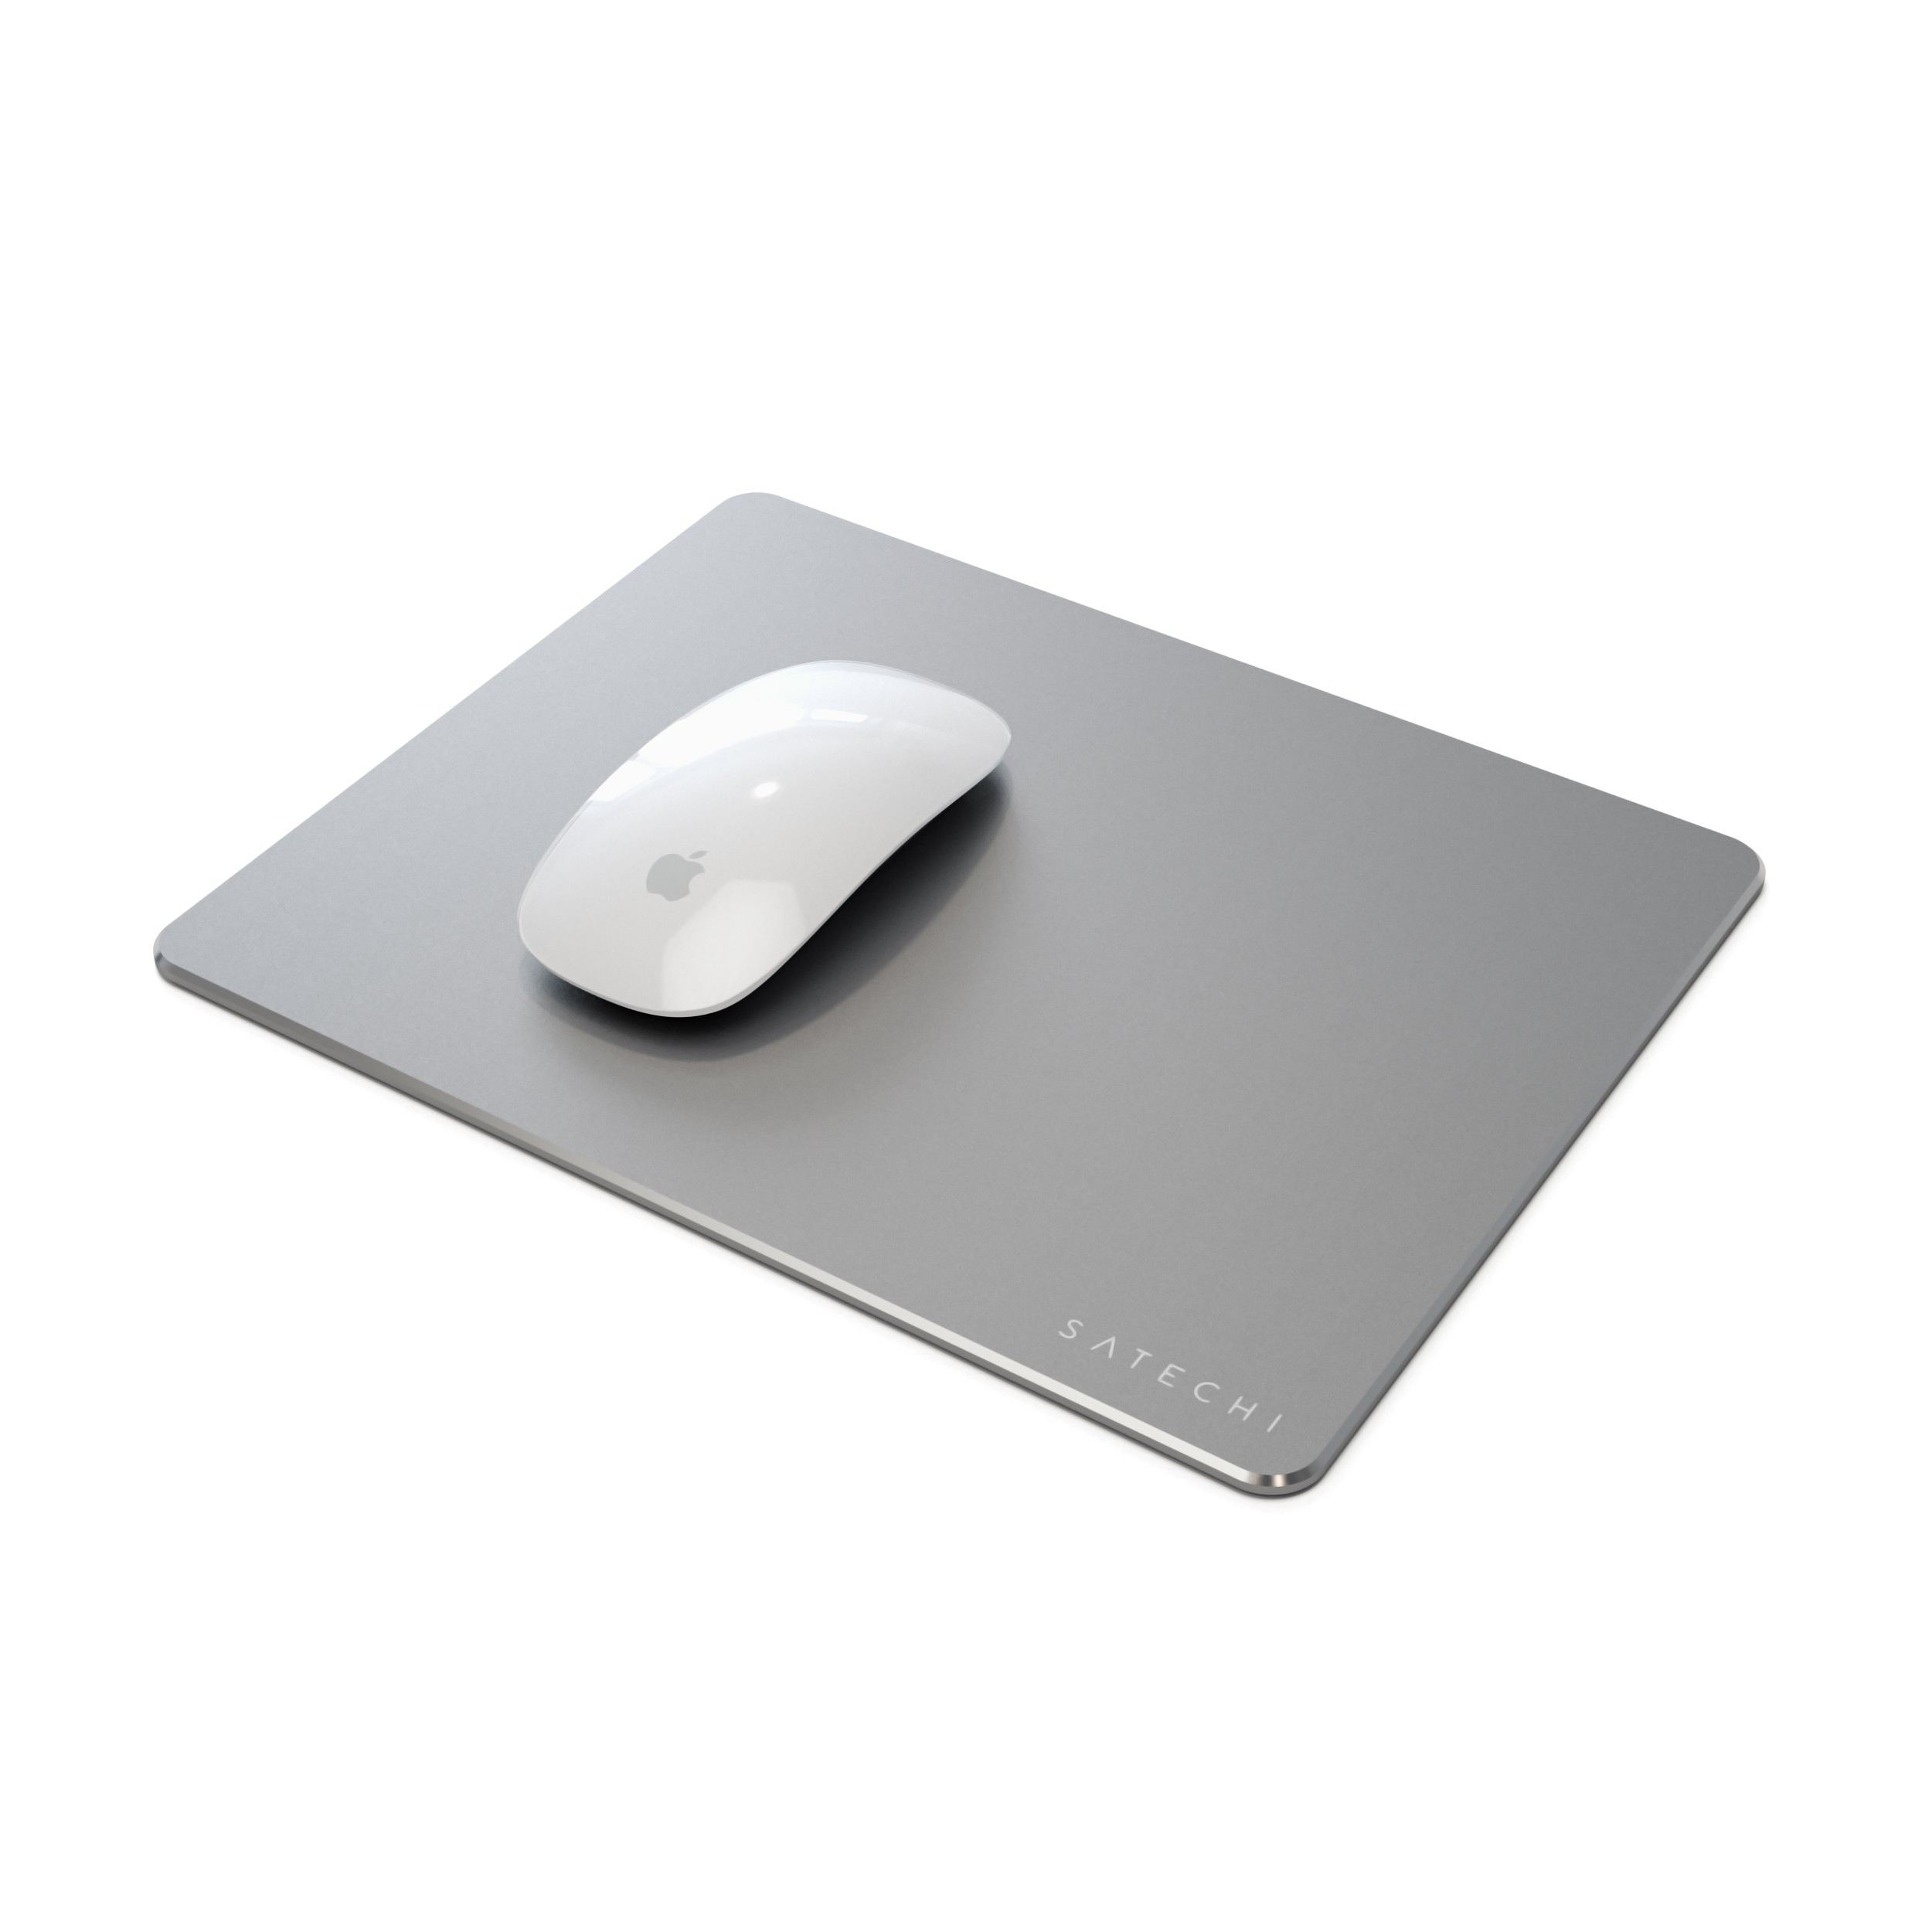 Satechi Aluminum Mouse Pad With Non Slip Rubber Base Space Gray Relay Switch Walmart Com